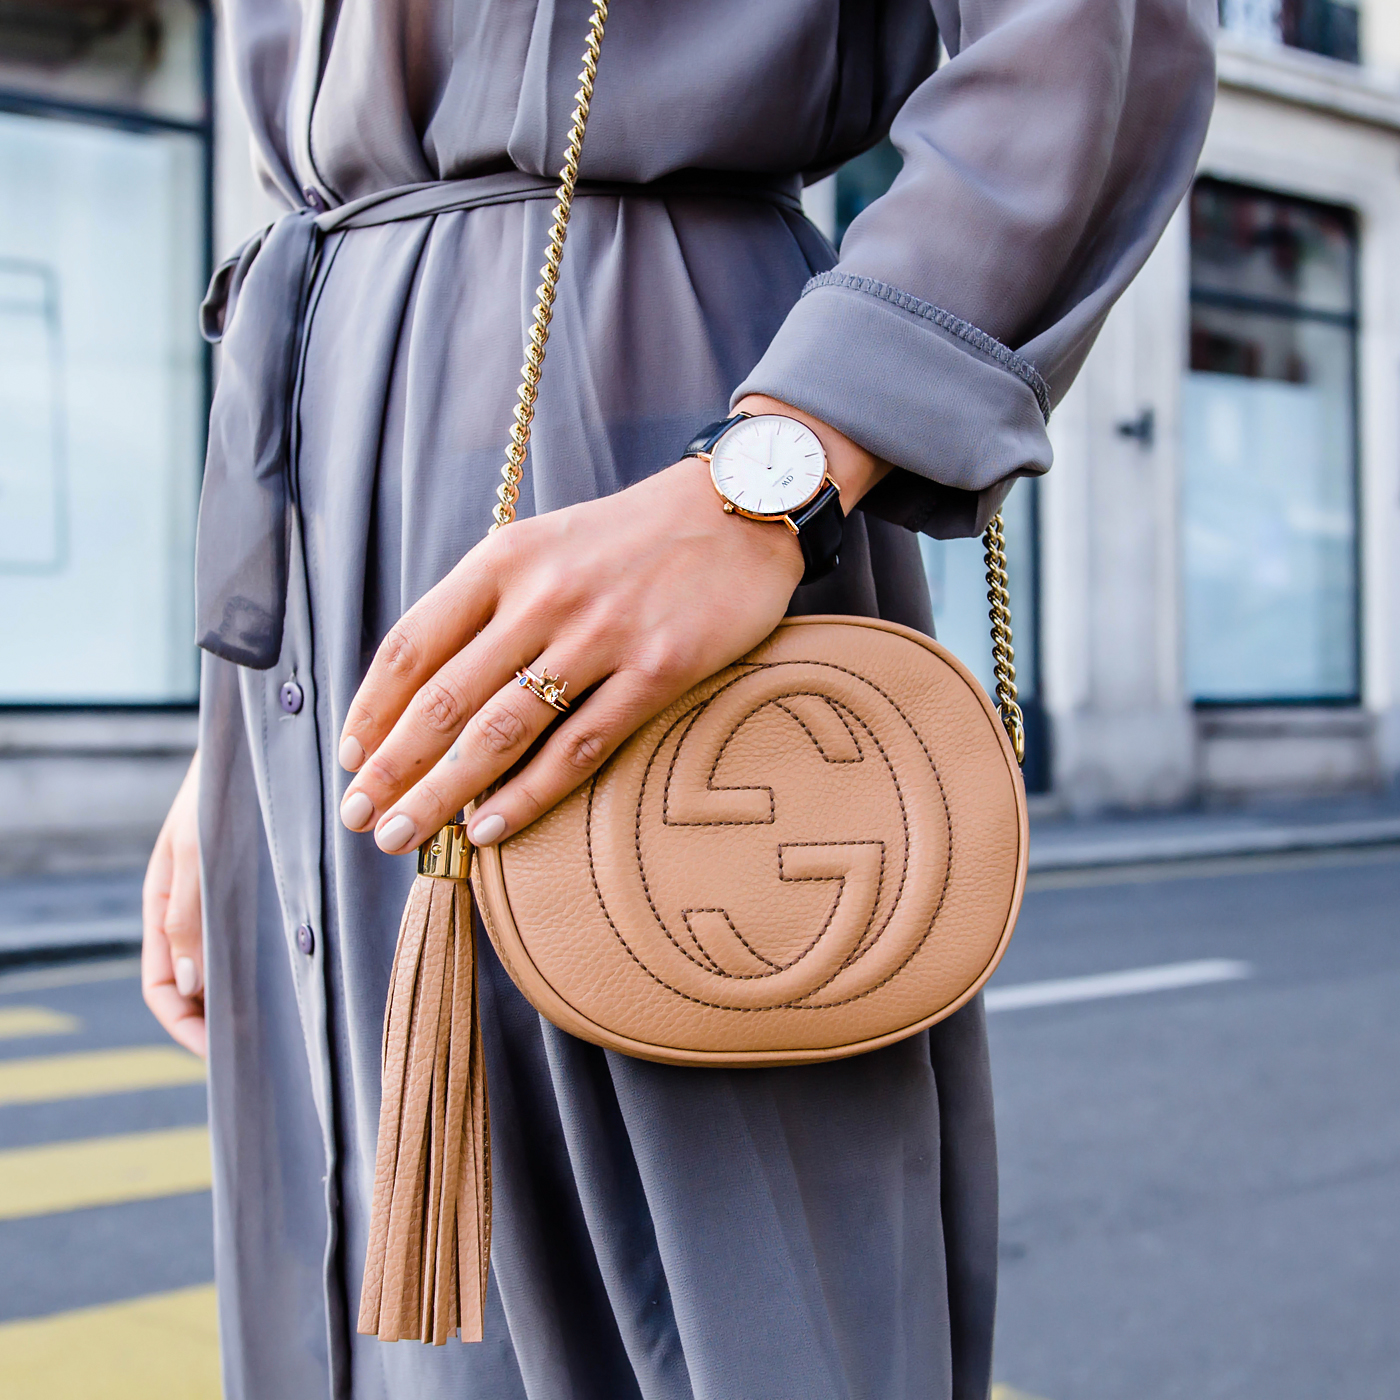 alison liaudat, blog mode suisse, swiss fashion blogger, Fashion blog from Switzerland, vitstyle, gucci soho leather, karen walker eyewear, daniel wellington, animas code, Astrid and miyu, FIVE Jeans, shopbop,